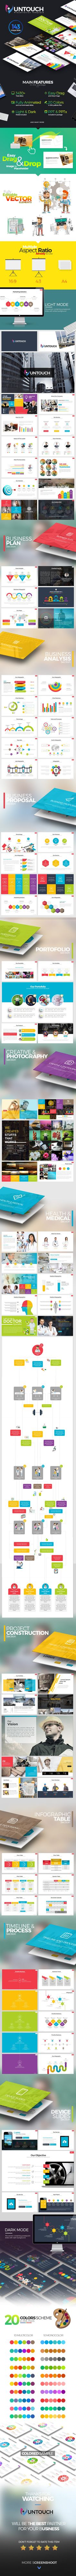 Untouch Presentation Template  - Powerpoint • Only available here ➝ http://graphicriver.net/item/untouch-presentation-template/16778212?ref=pxcr